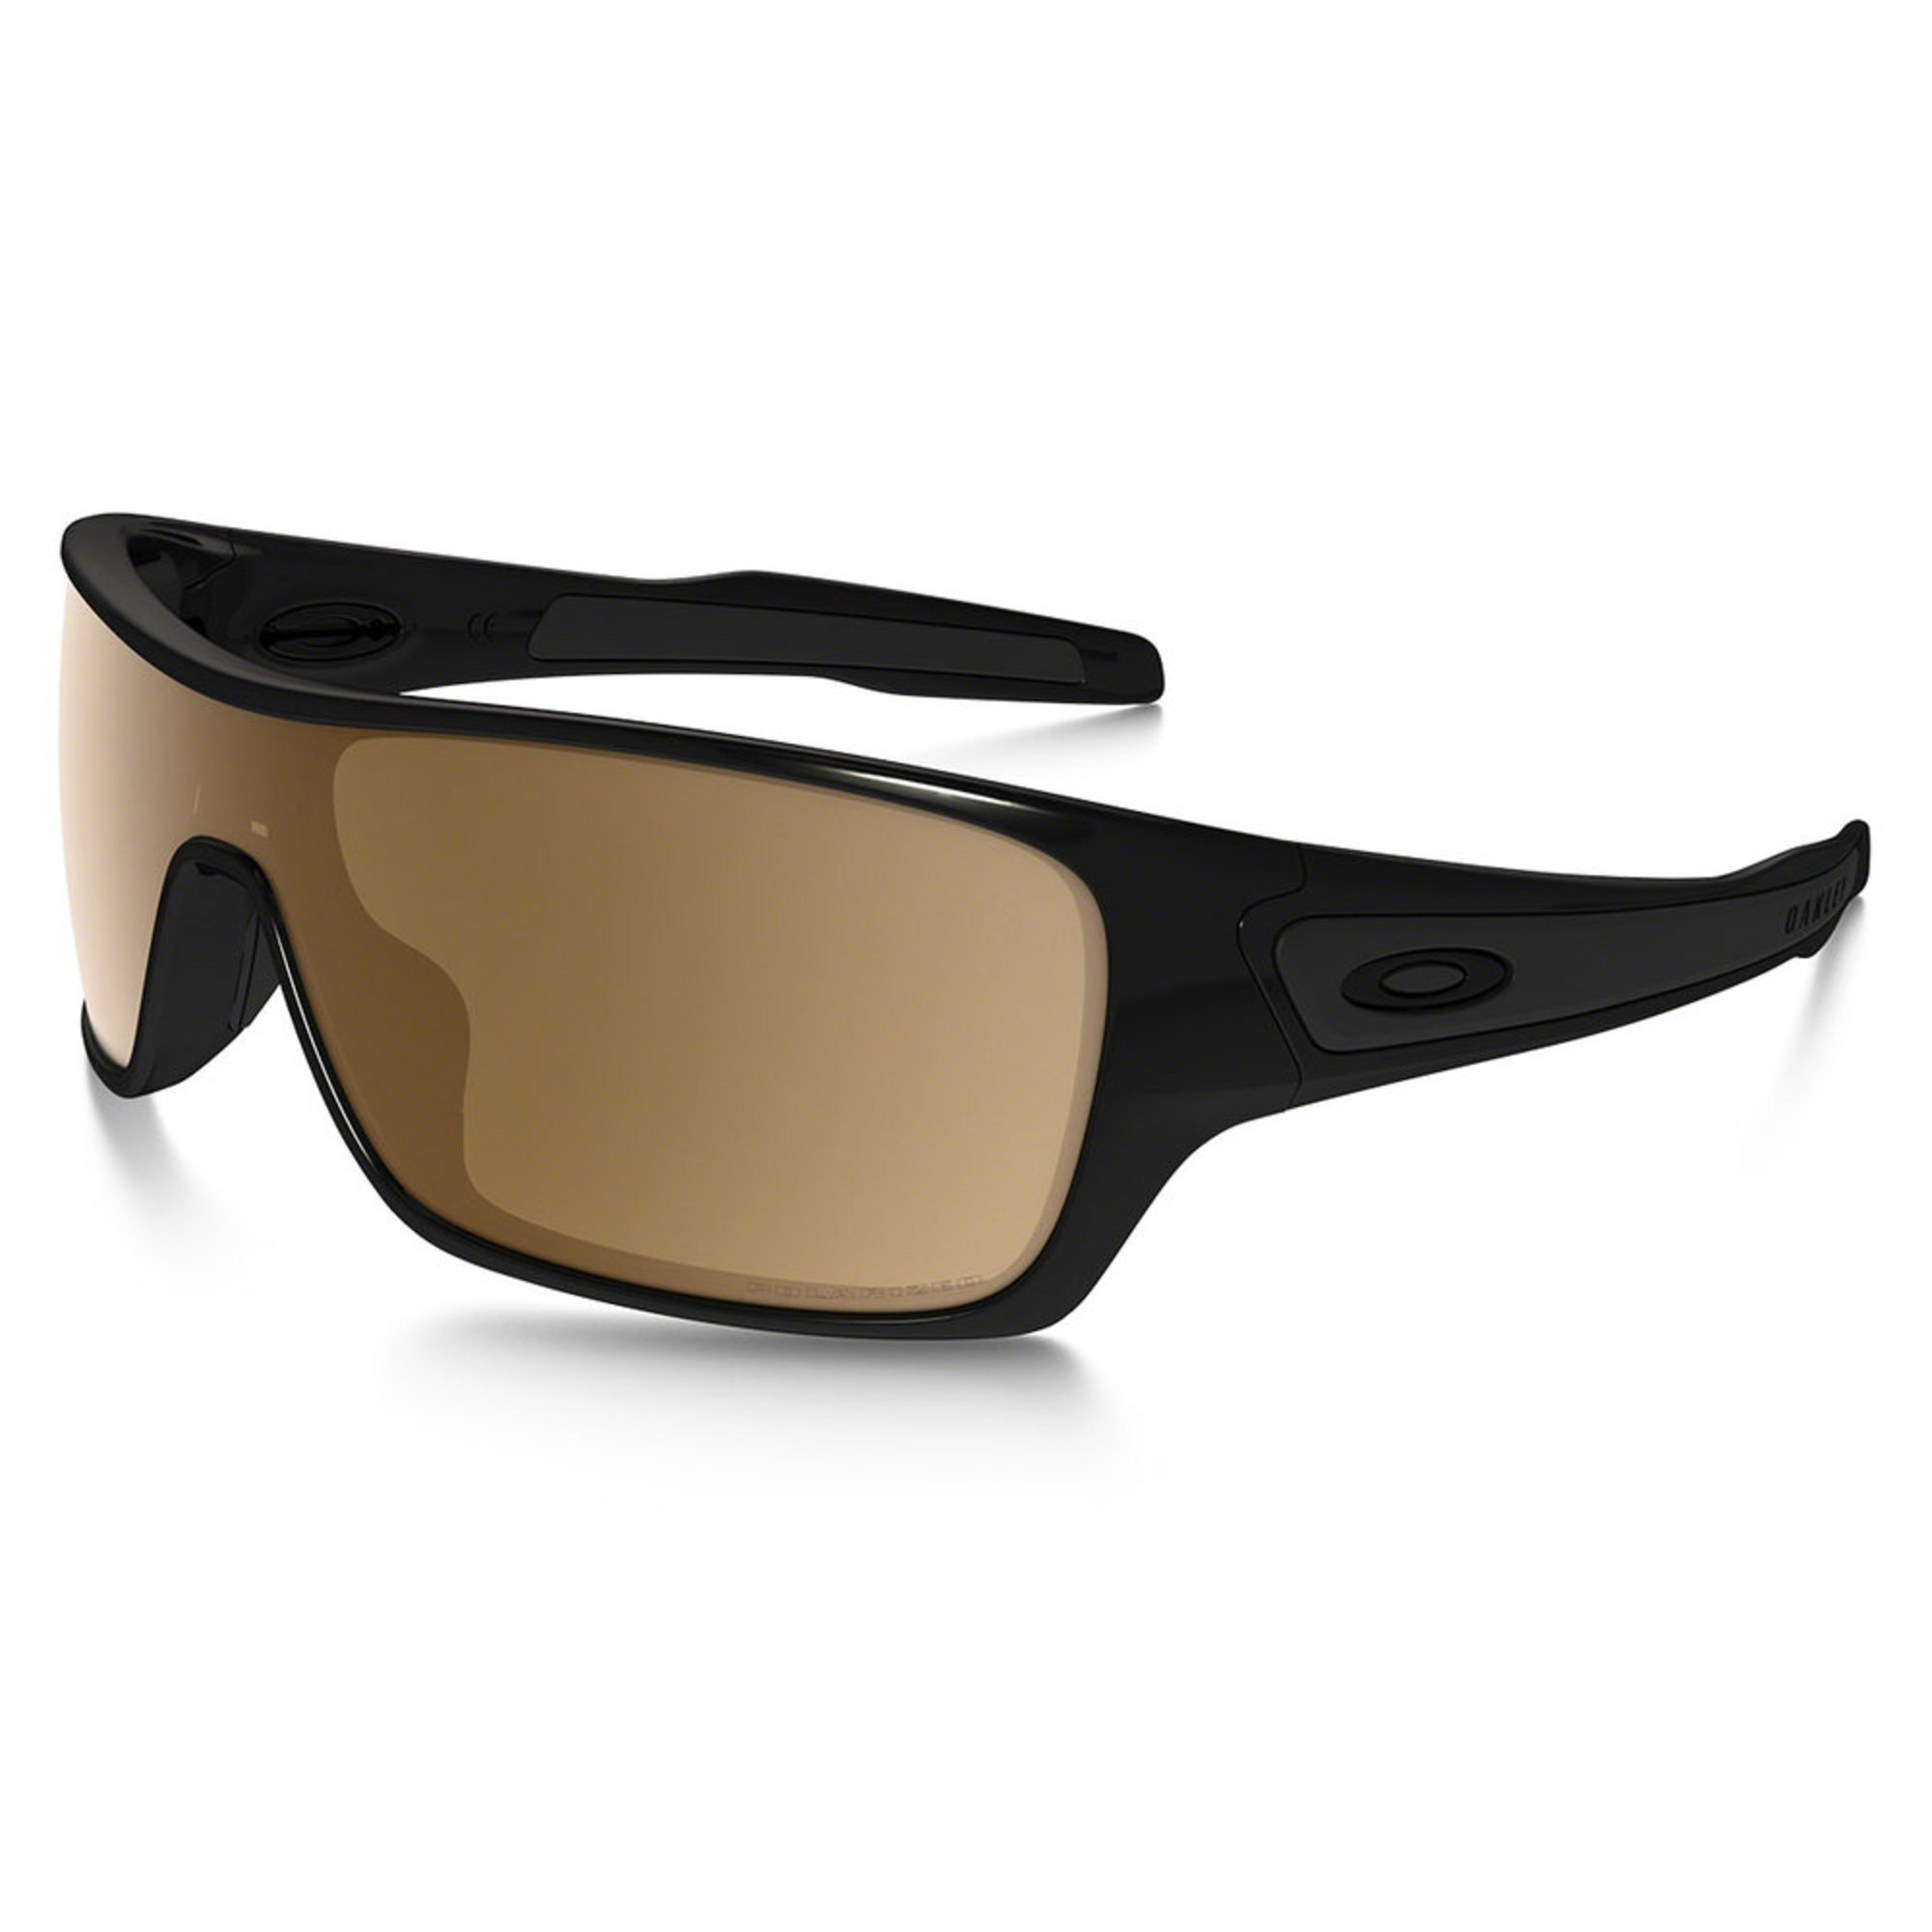 d2fcb652b26a Clearance Oakley Polarized Sunglasses Quality